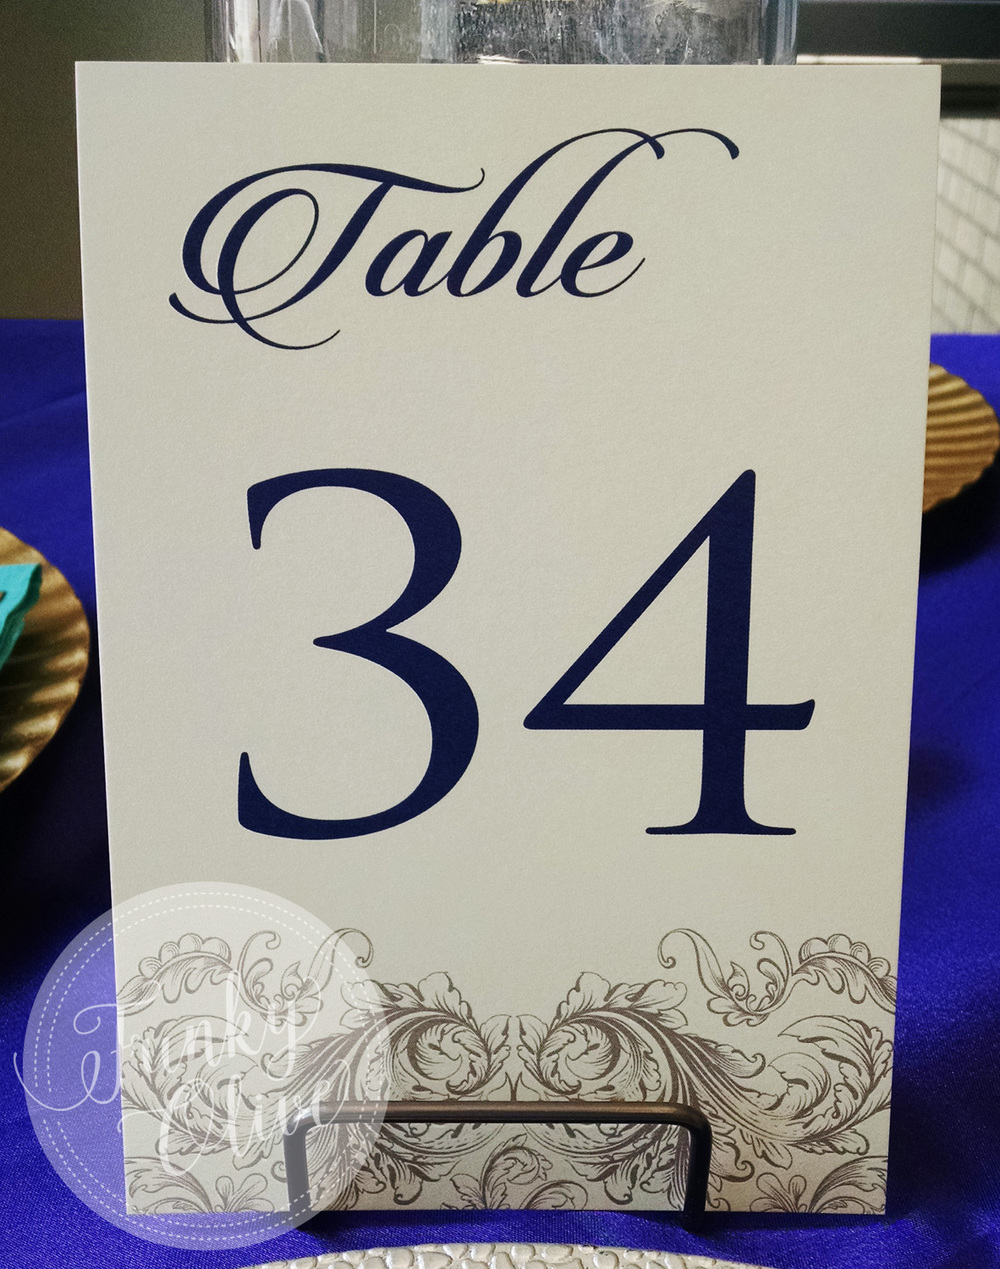 Greek Table Number.jpg